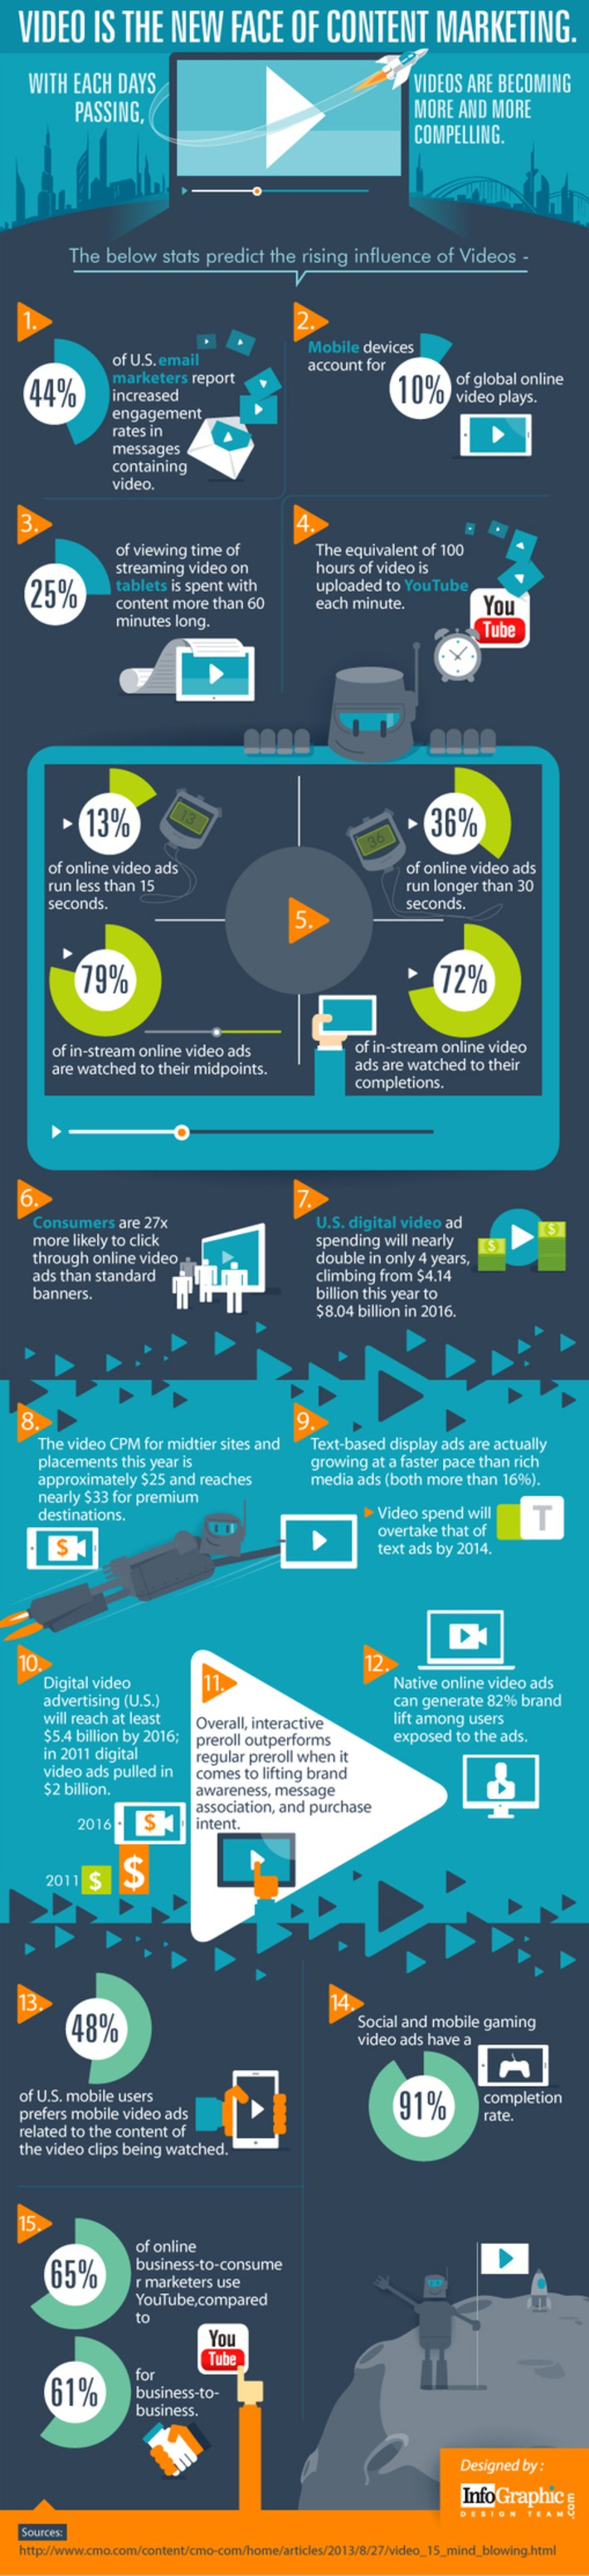 Video Is the New Face of Content Marketing [Infographic] | A Marketing Mix | Scoop.it